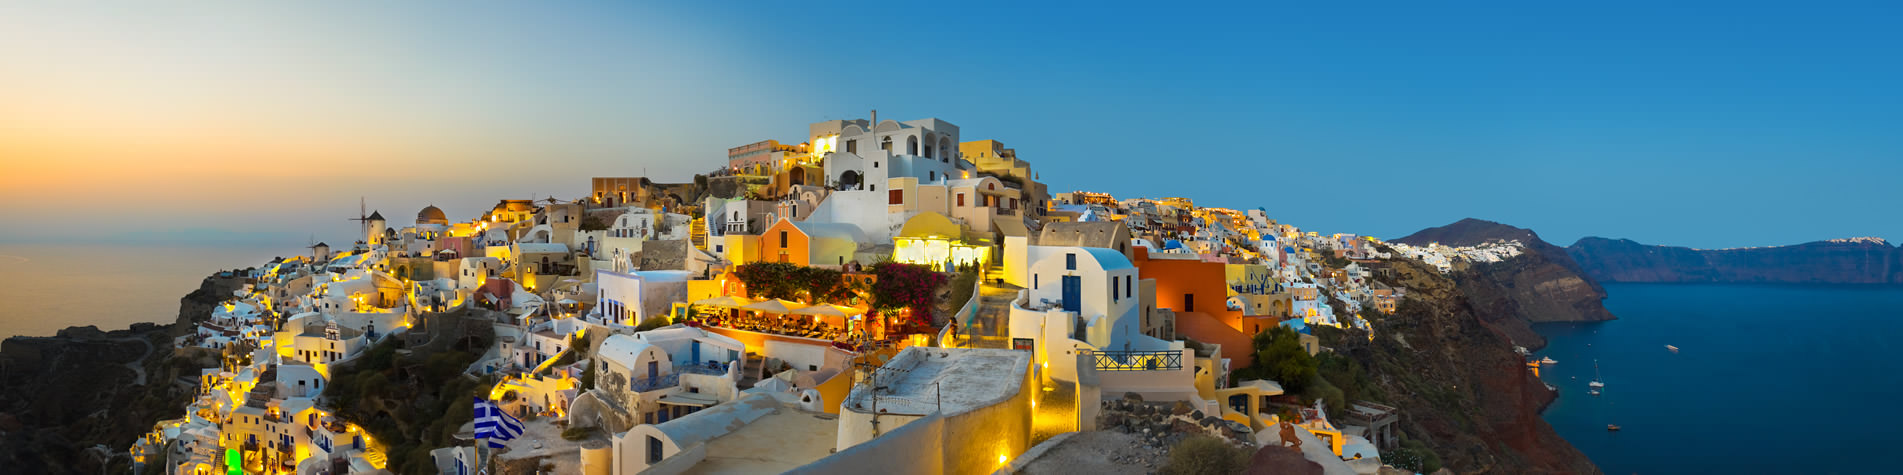 Santorini Island Holidays with Cyplon Holidays